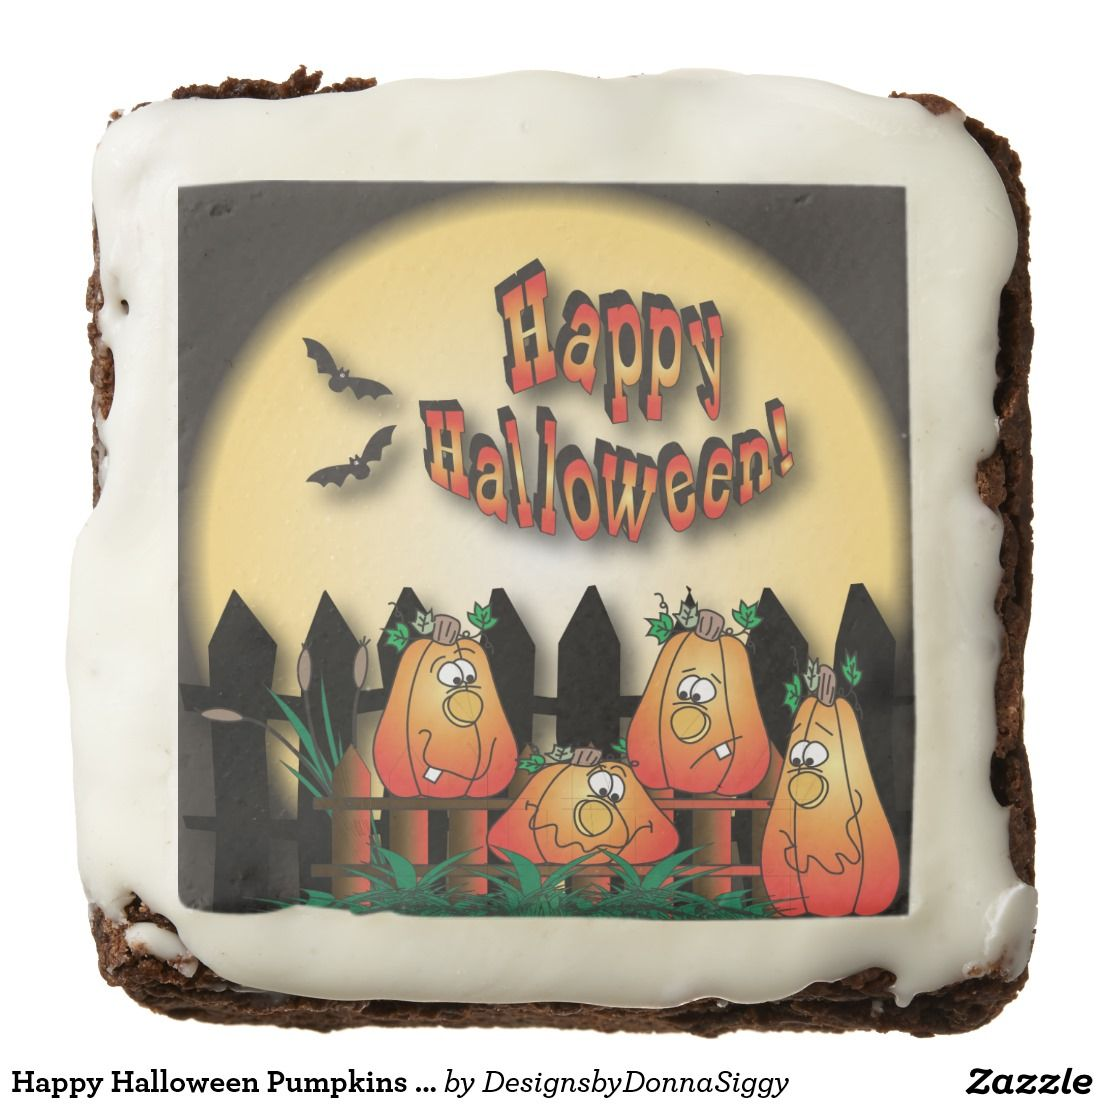 Happy #Halloween #Pumpkins on a Fence Square #Brownie #treats #shopping #party #gifts